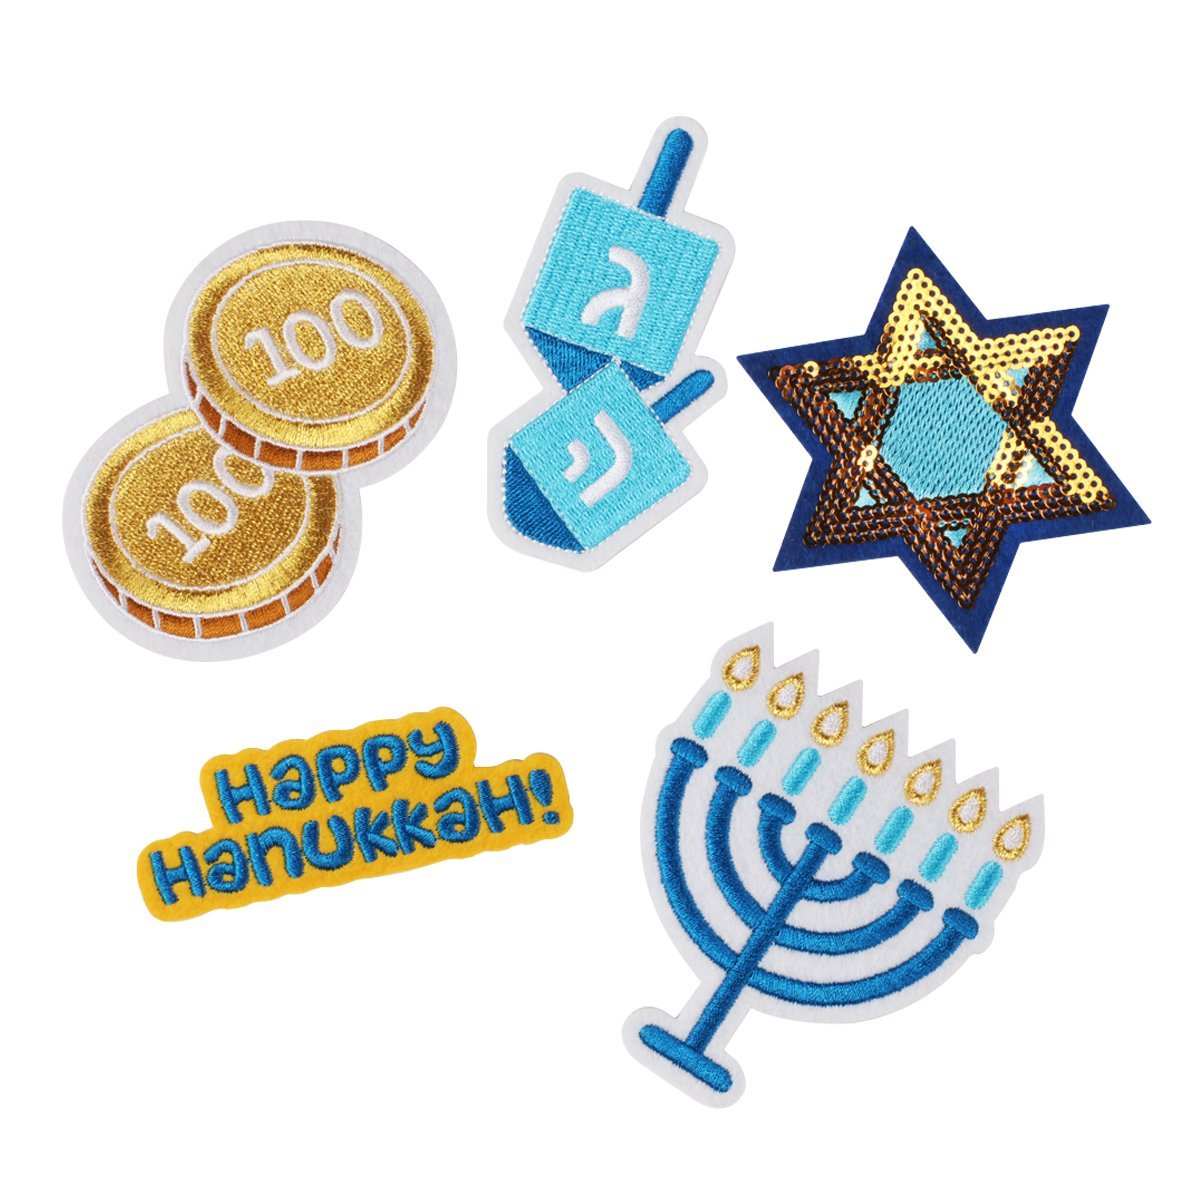 DCI Ugly Sweater Kit, Hanukkah Patches, Metal Pin Backs, Set of 5 Embroidered Patches, No Sewing Required by DCI